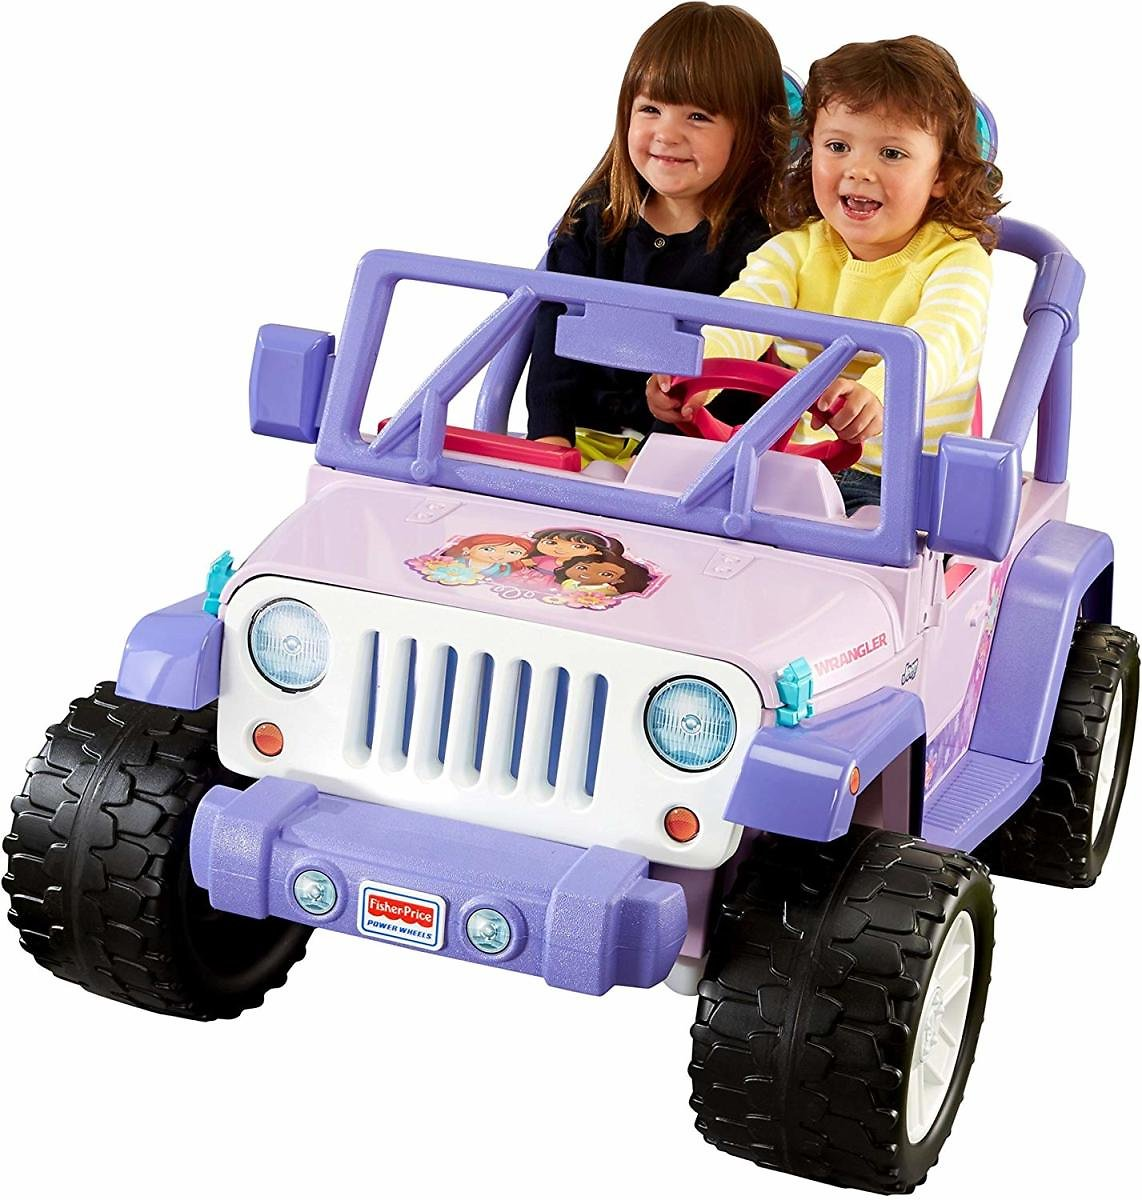 $5 Off $10 or $10 Off $20 Toys (Select Accounts)